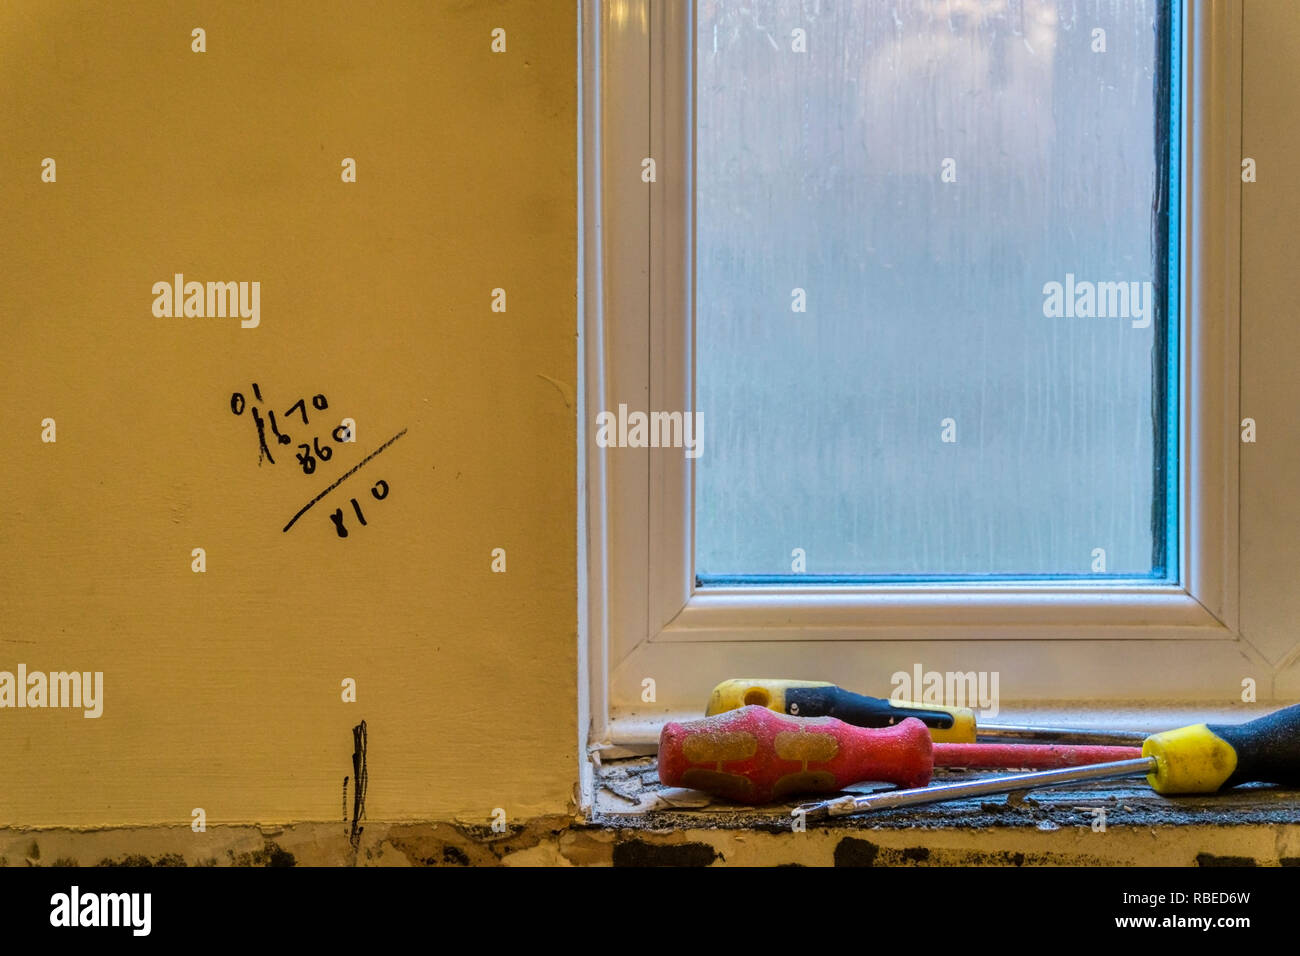 Builders calculations written on wall while building work is carried out. - Stock Image